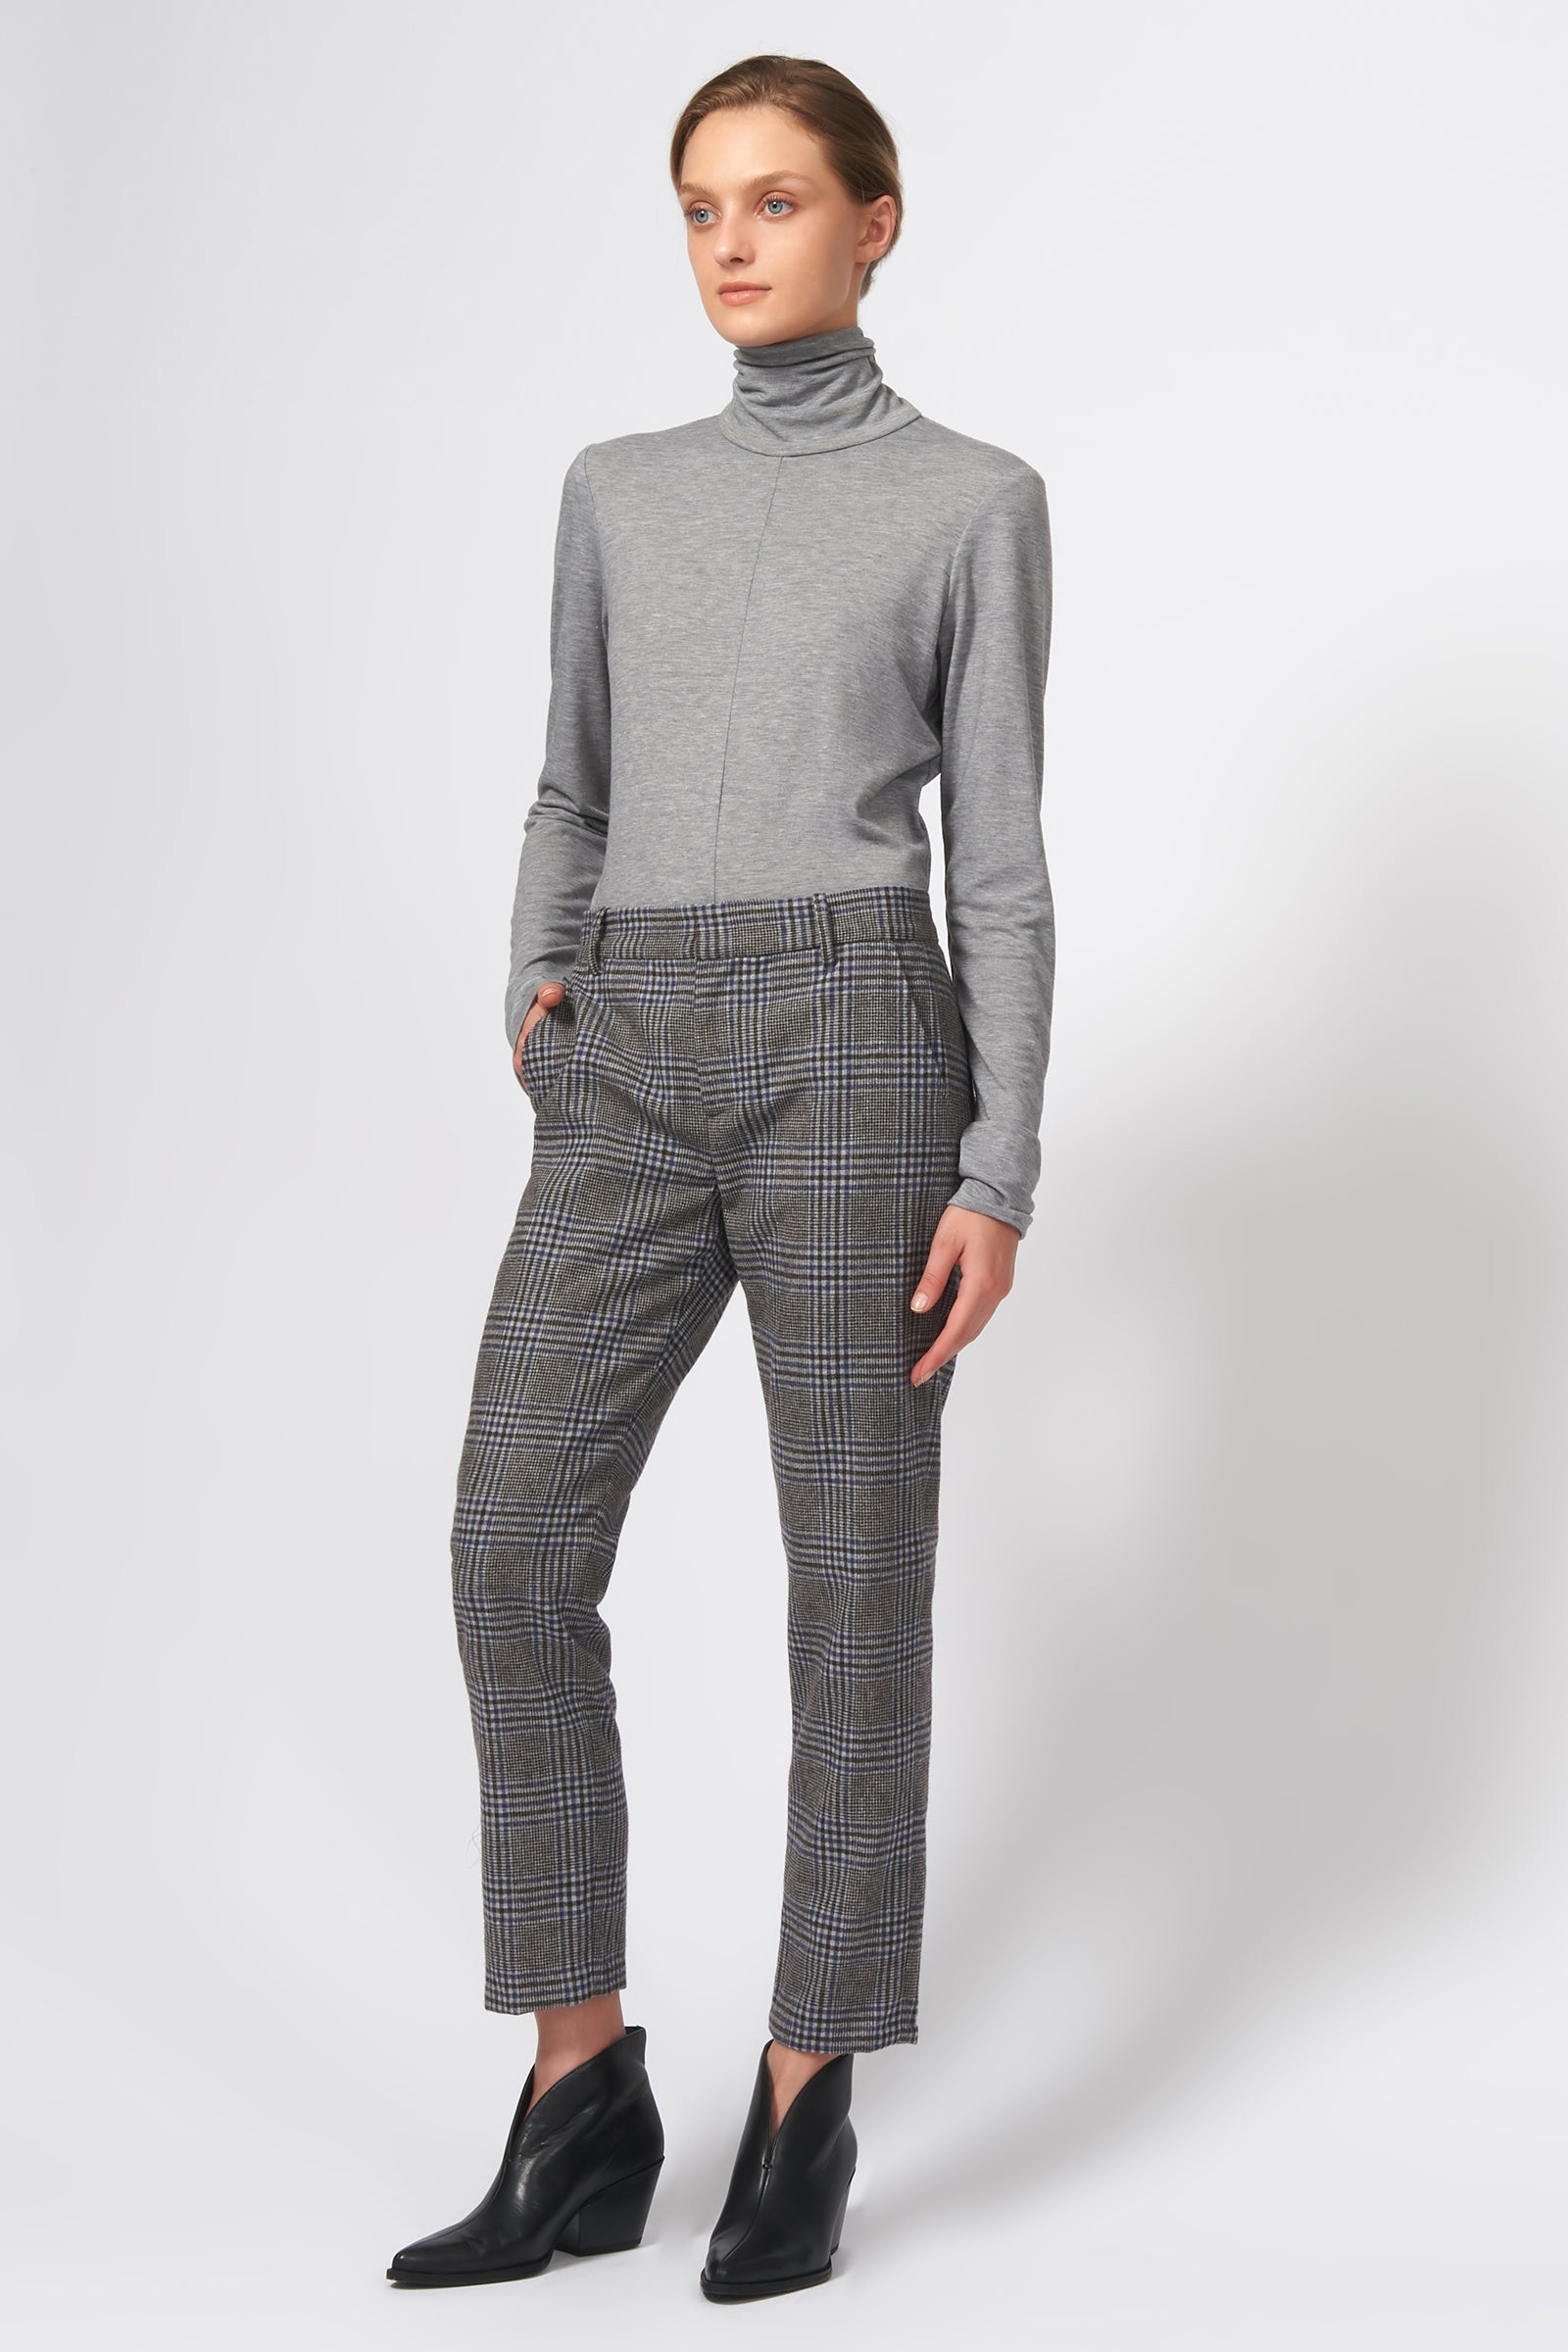 Kal Rieman Cigarette Pant in Grey Plaid on Model Front View